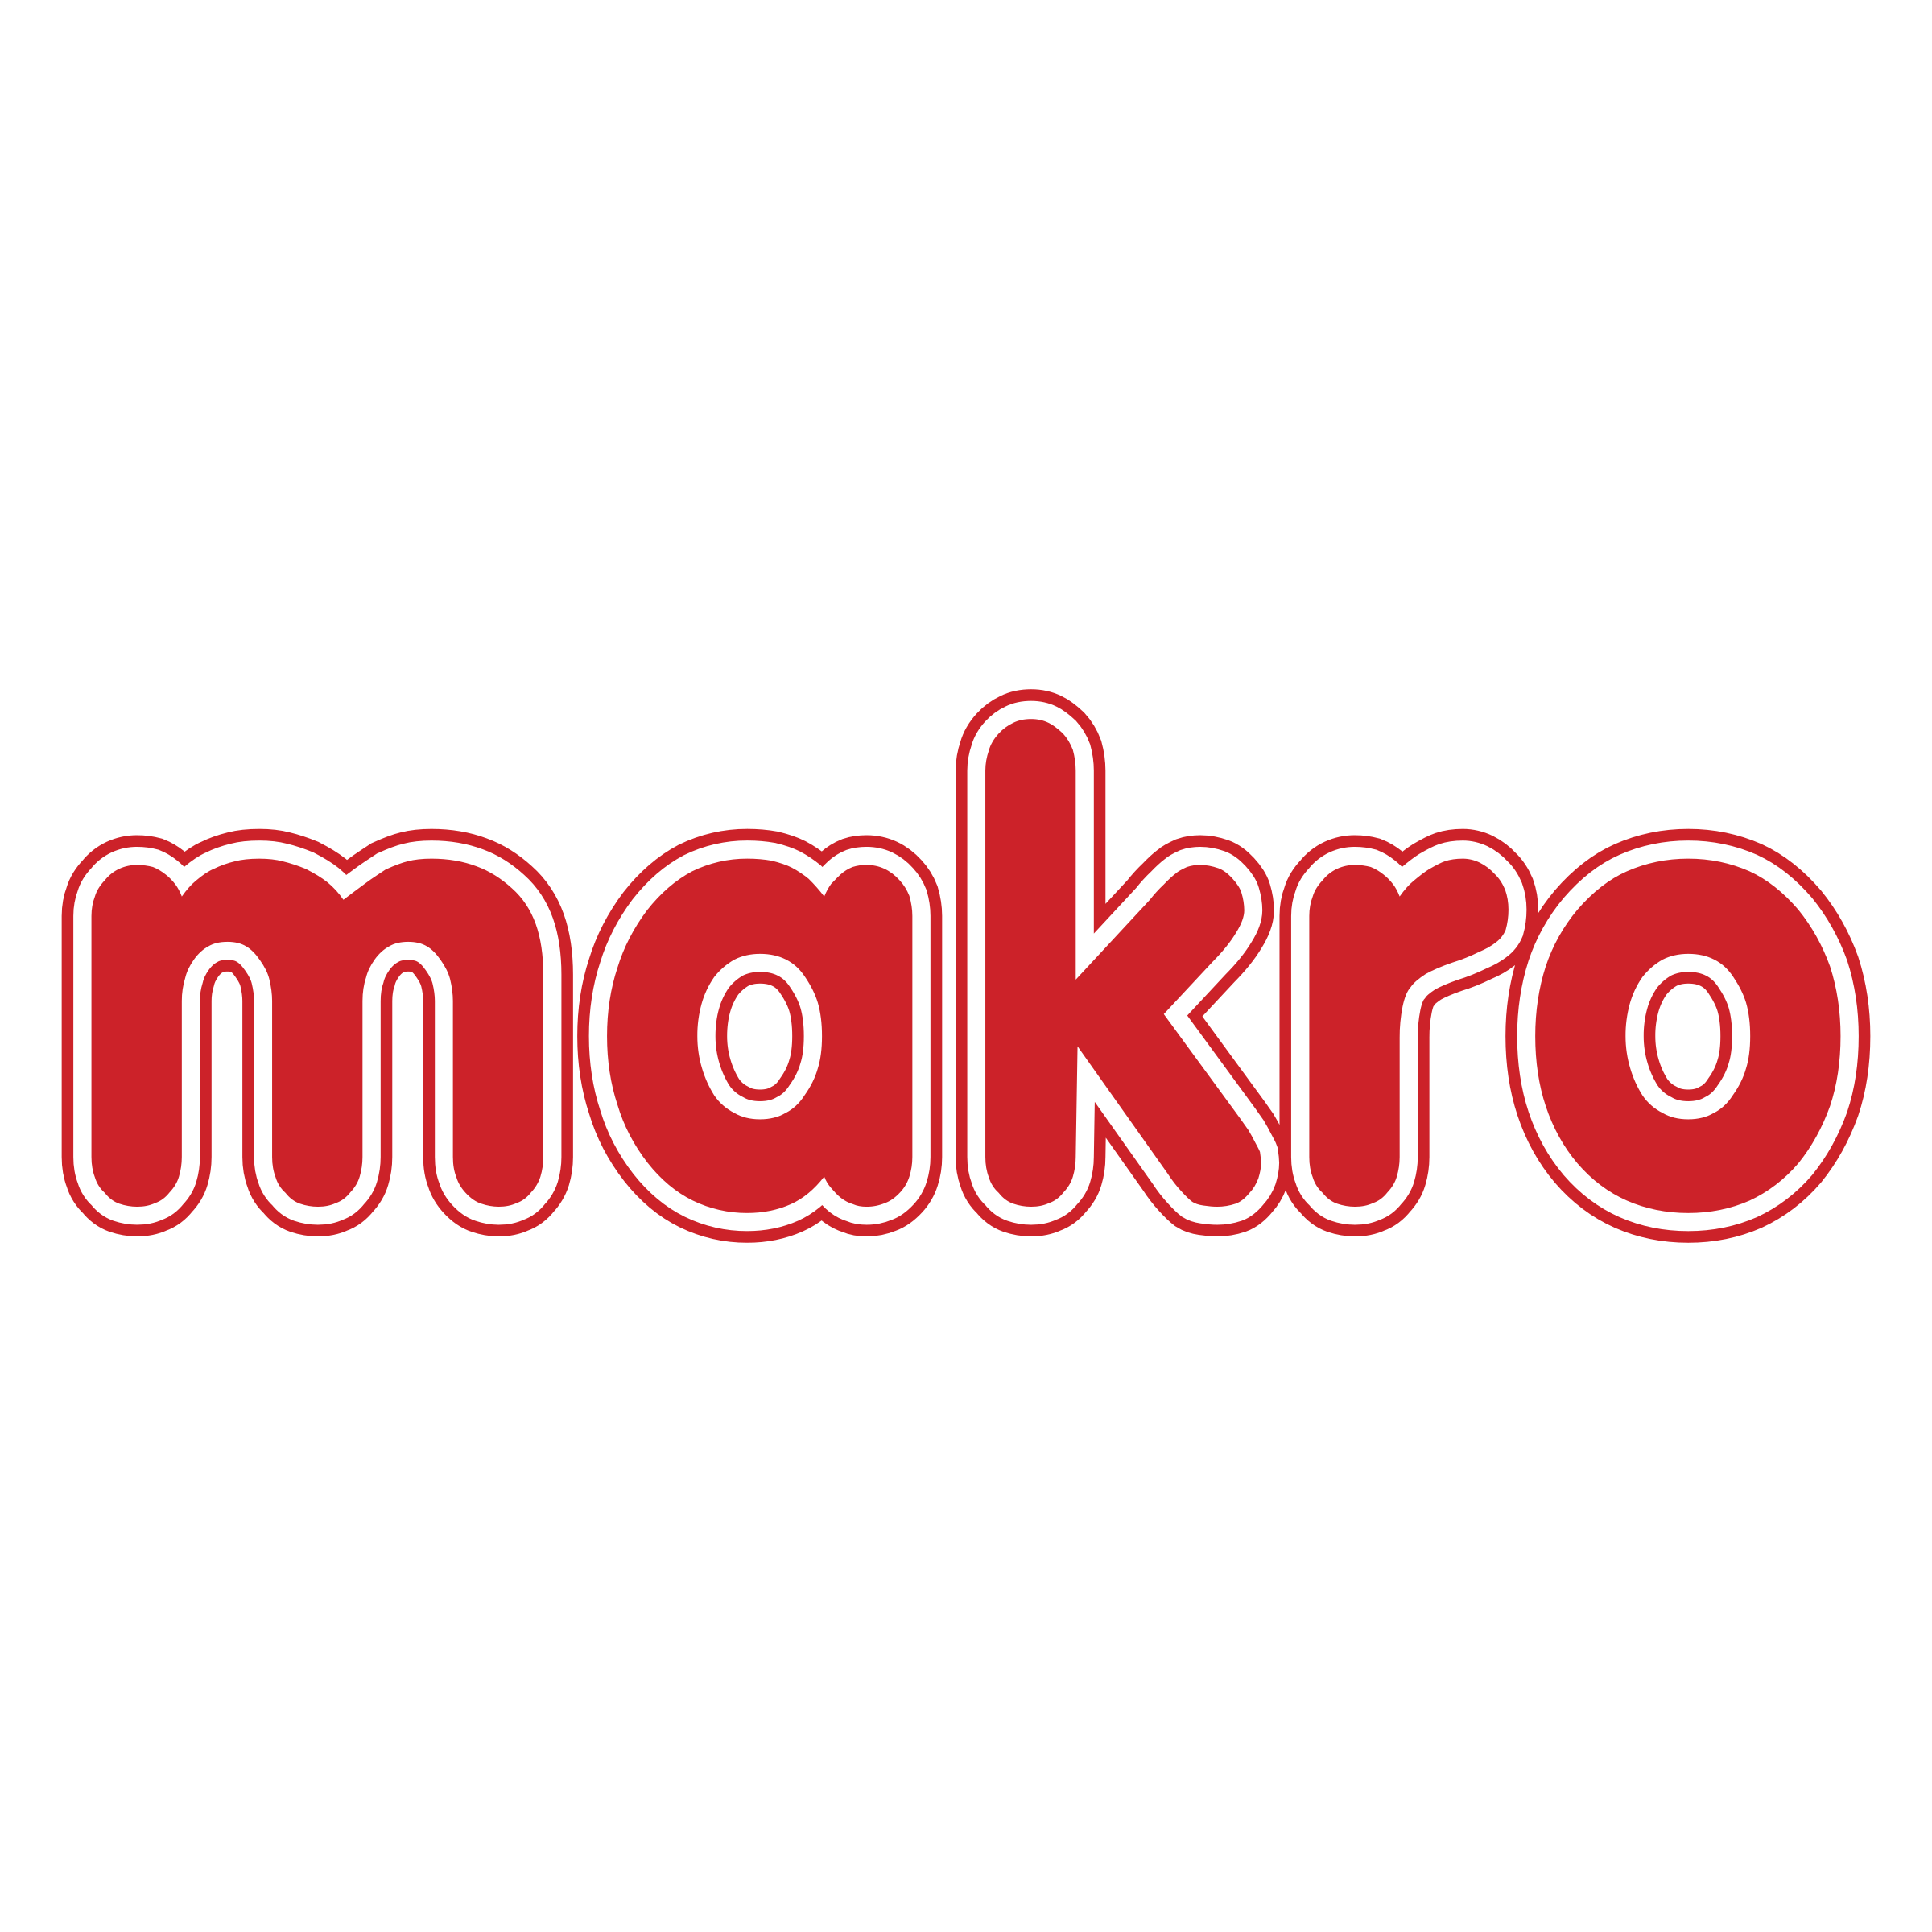 Logo makro download free clip art with a transparent.